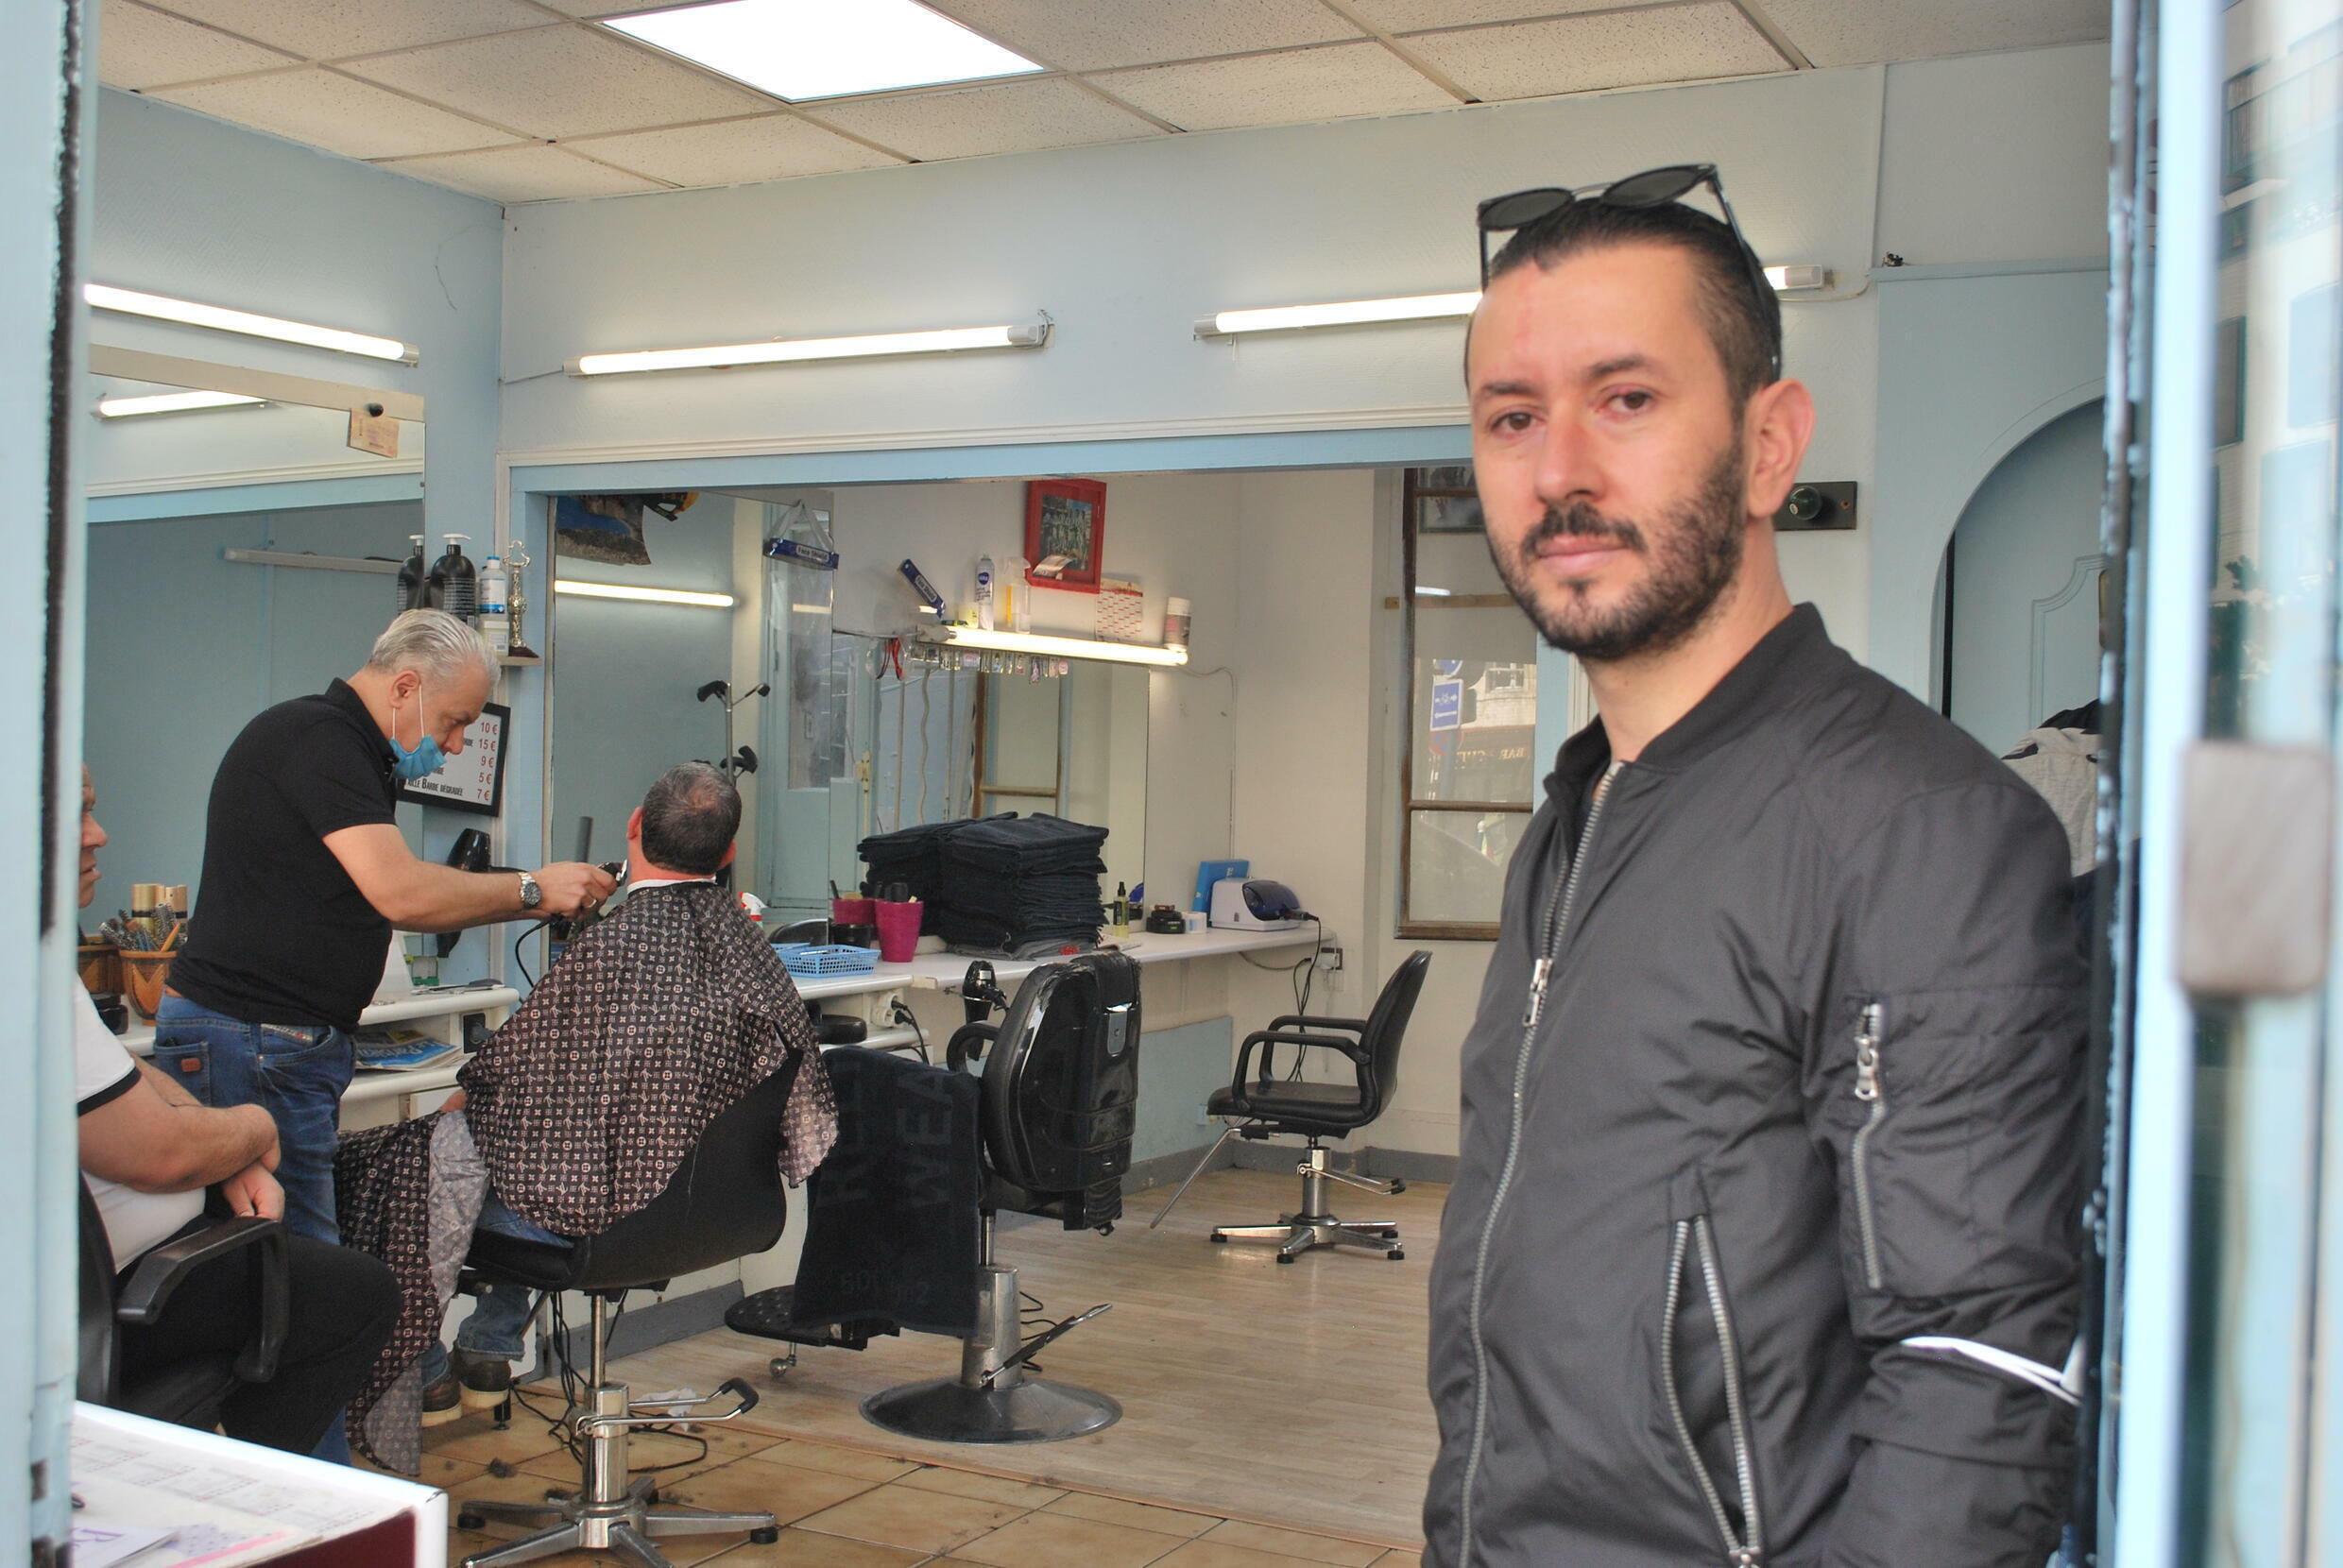 """Sufian, 36, says life has become a thing of the past. """"Unbearable"""" And that customers will start moving elsewhere."""